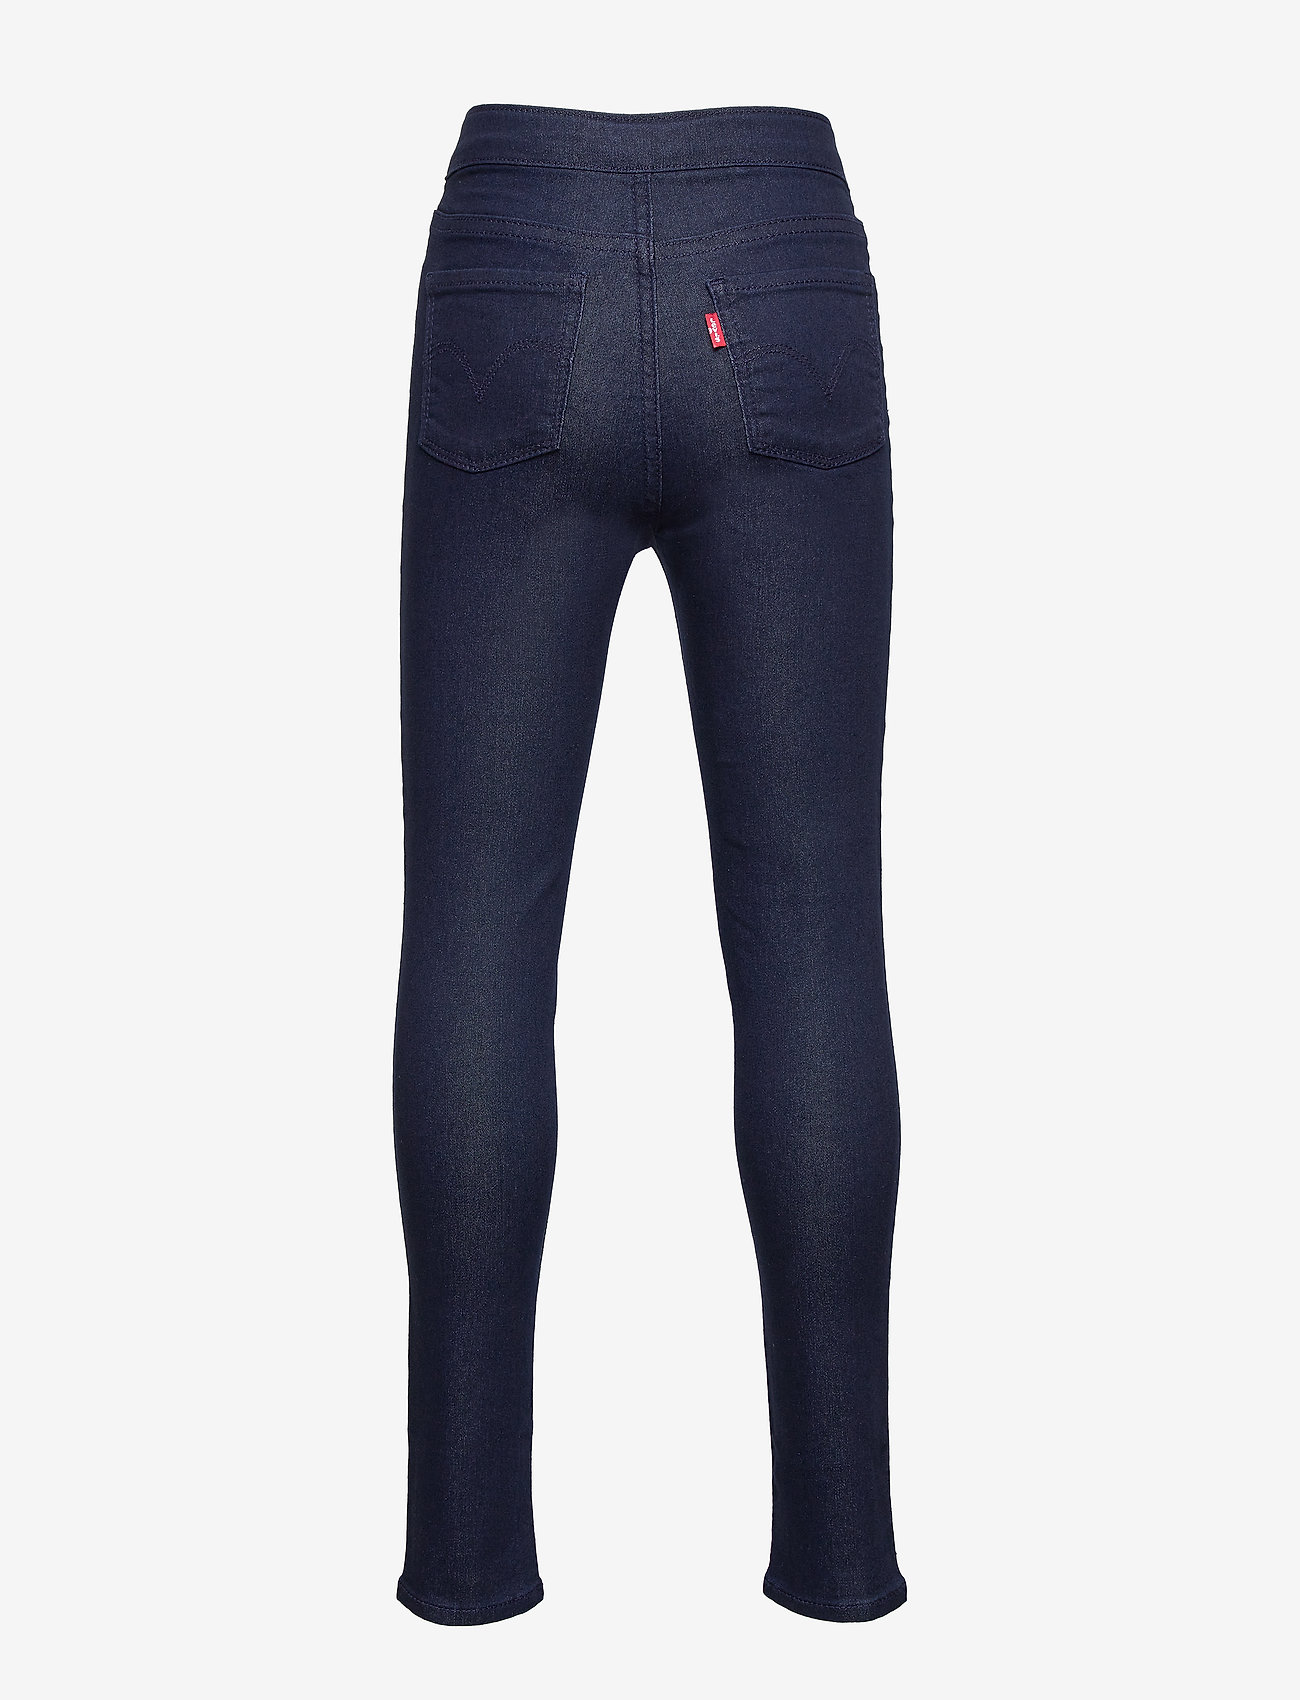 Pull-on Legging (New Rinse) (30 €) - Levi's z5DHP